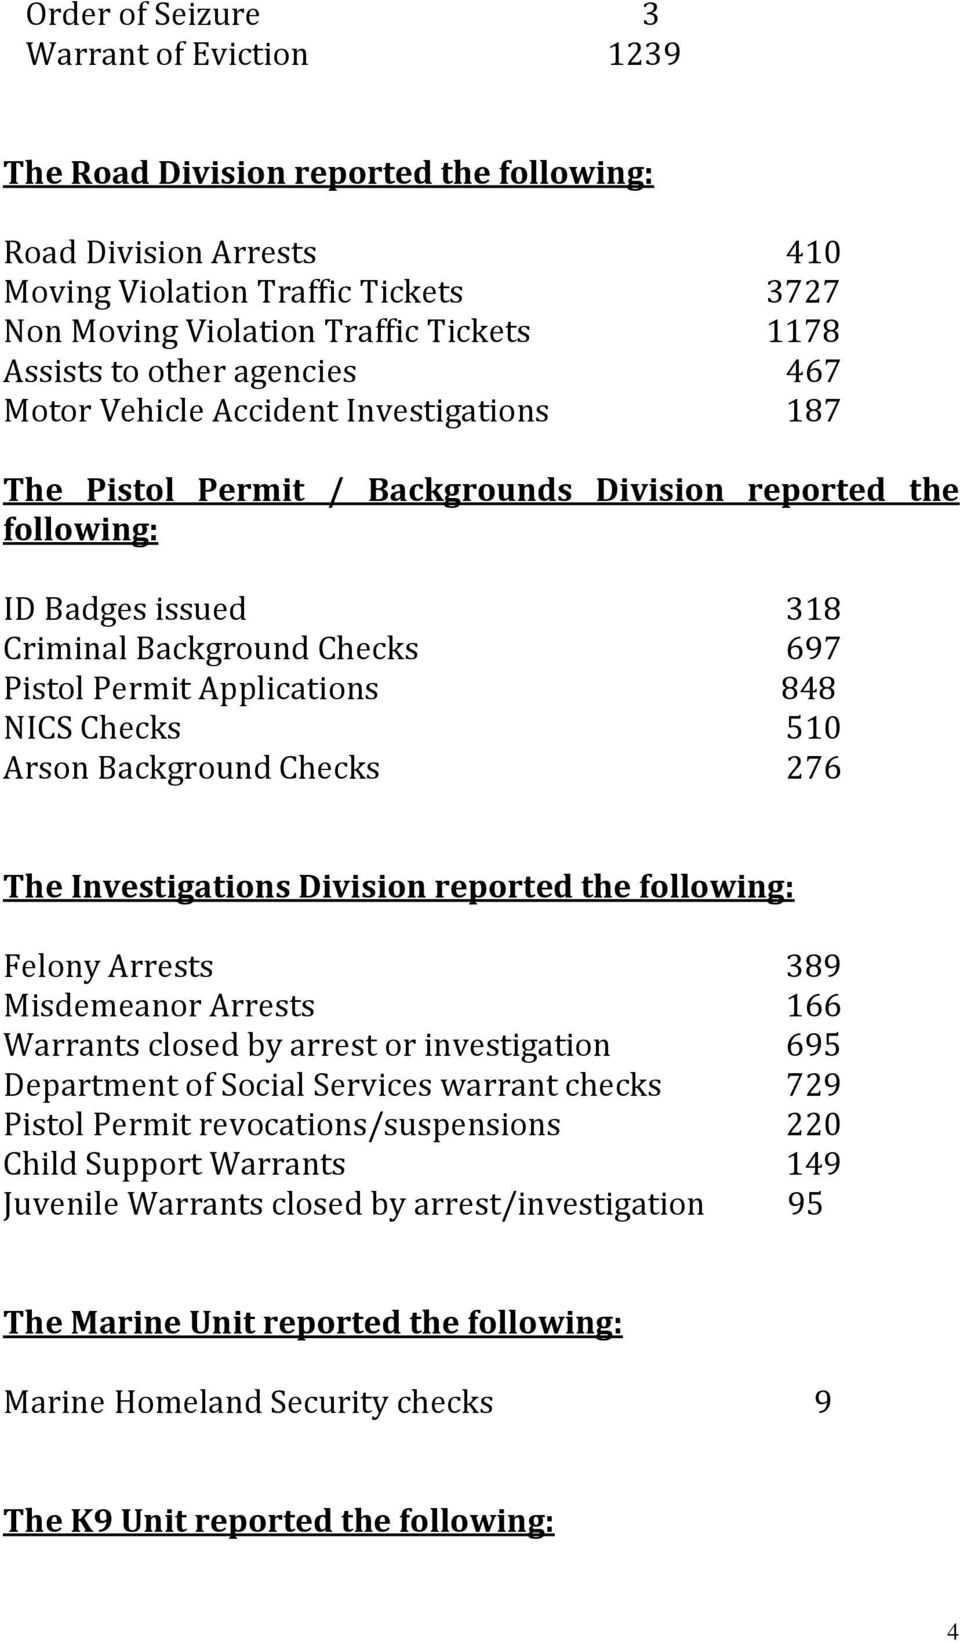 Applications 848 NICS Checks 510 Arson Background Checks 276 The Investigations Division reported the following: Felony Arrests 389 Misdemeanor Arrests 166 Warrants closed by arrest or investigation